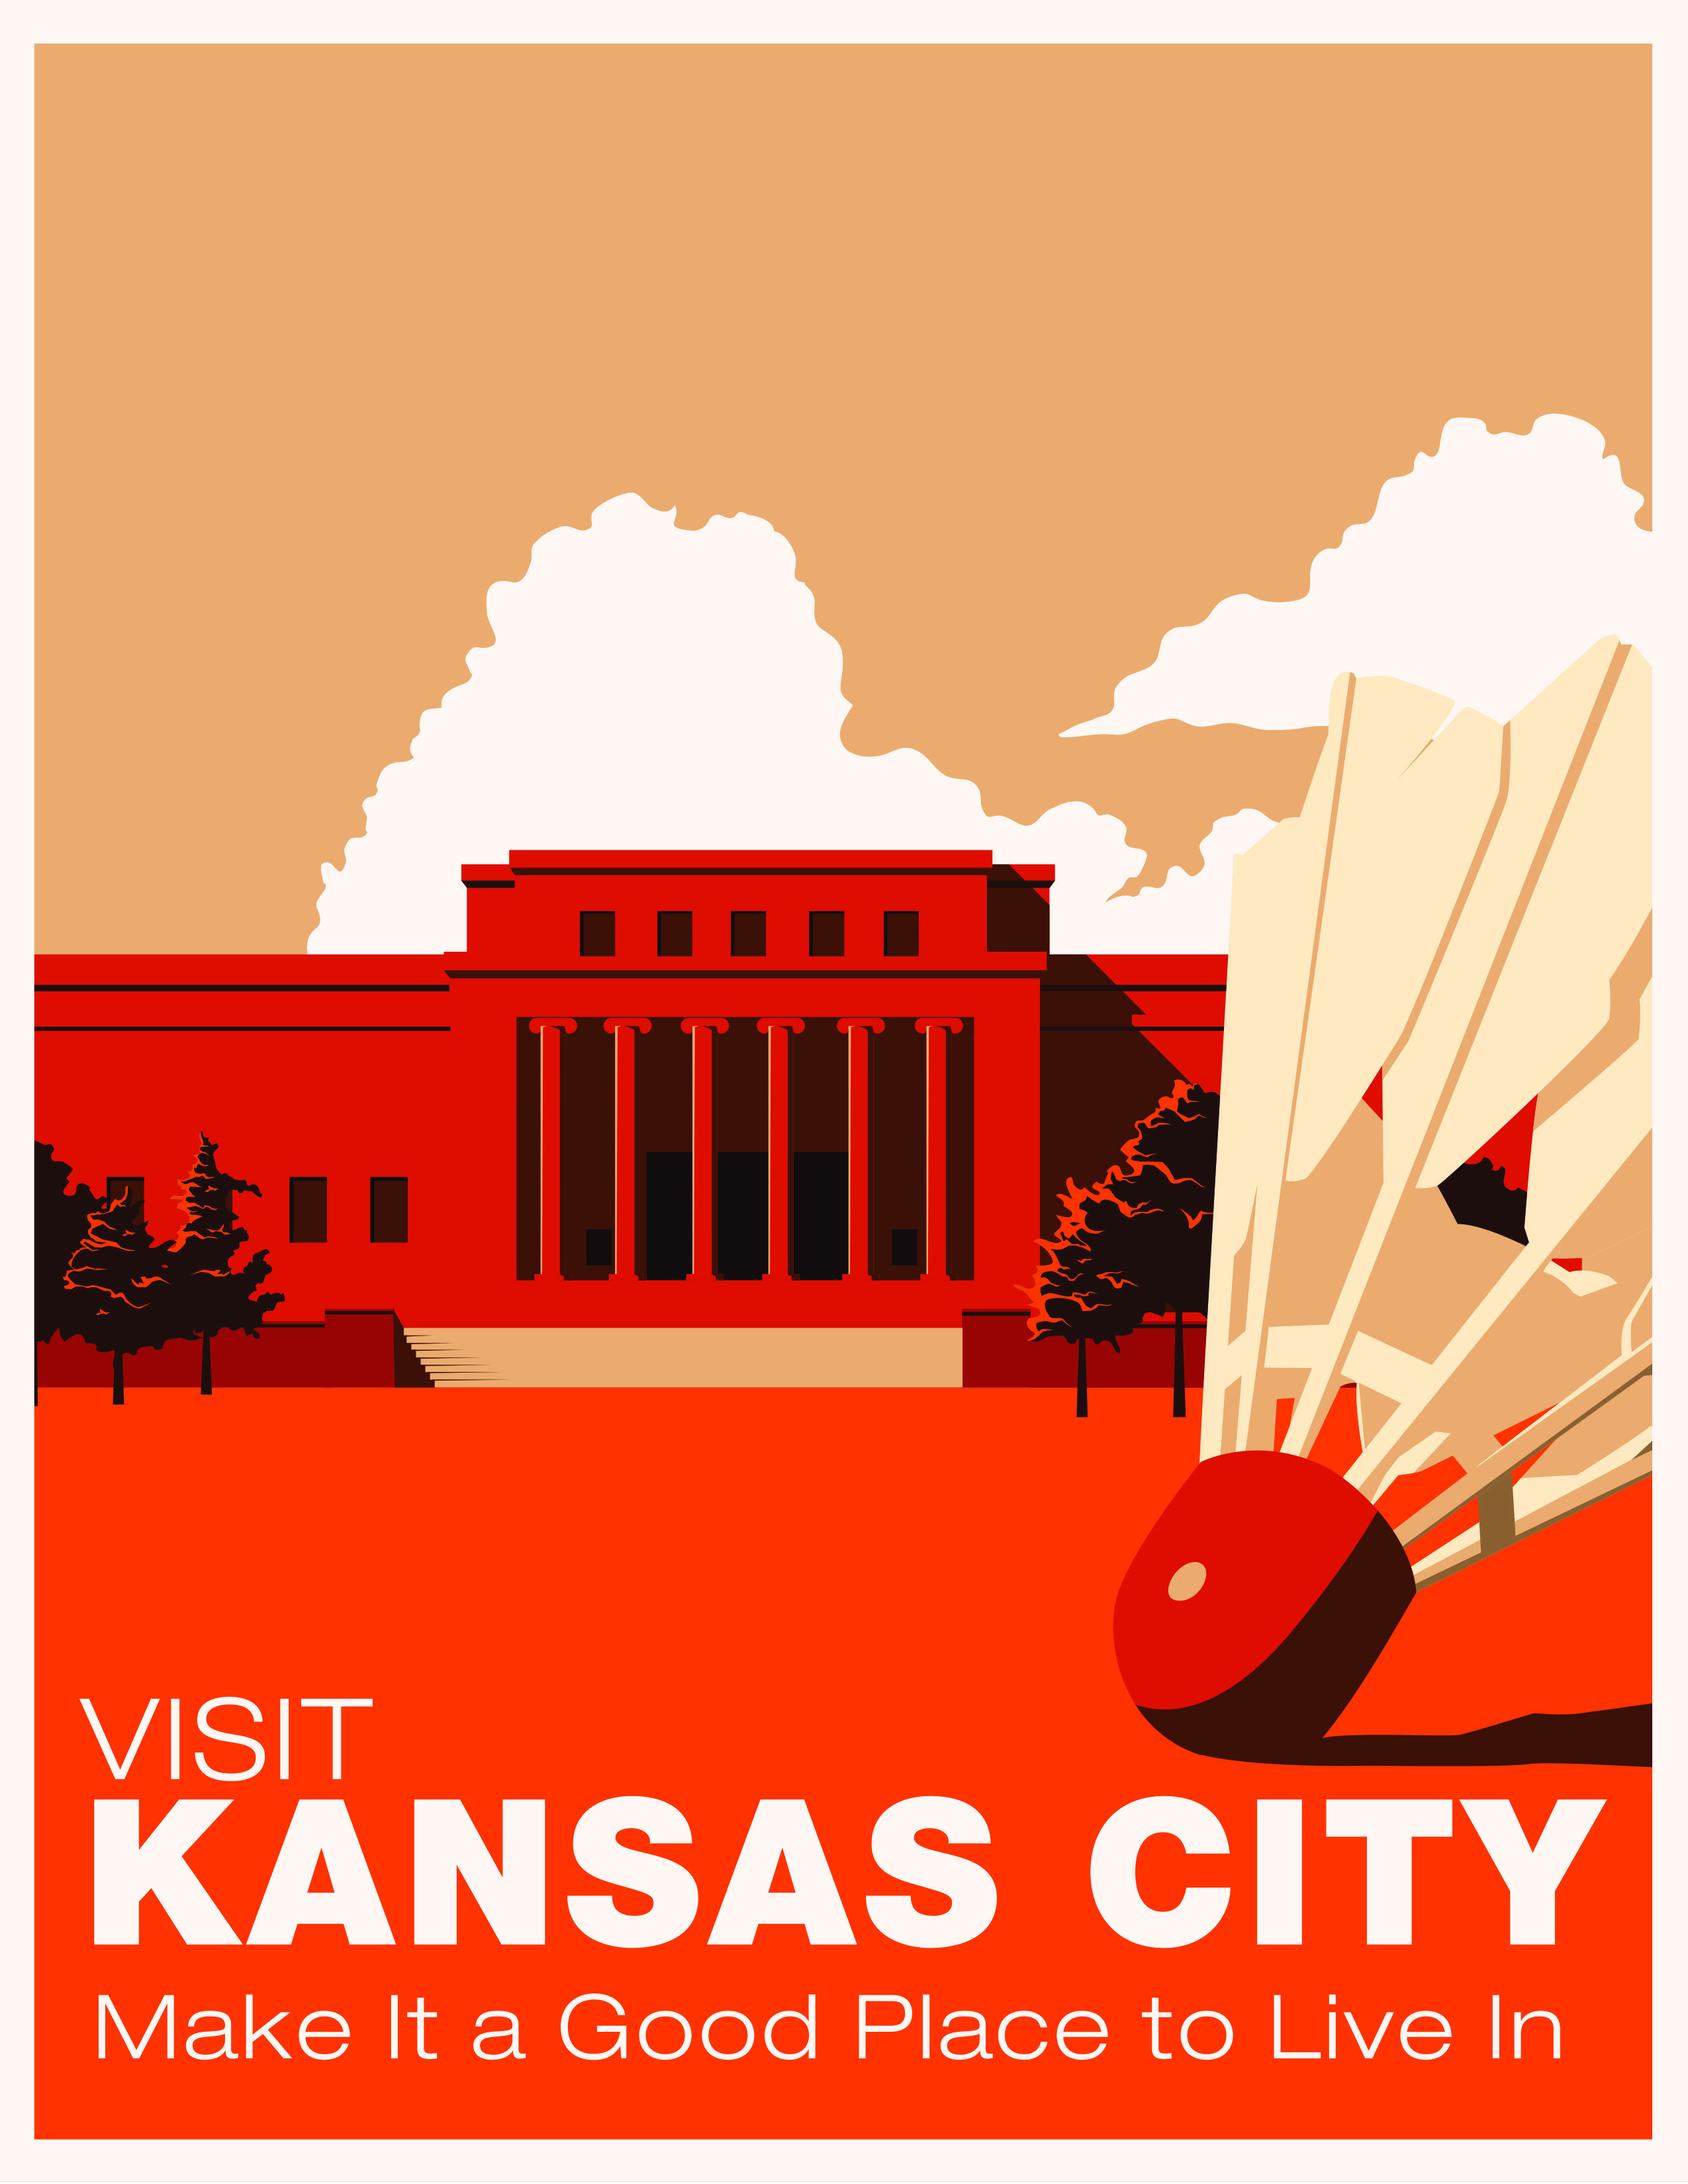 A Travel Poster Encouraging A Visit To Kansas City Travel Posters Travel Poster Design Tourism Poster